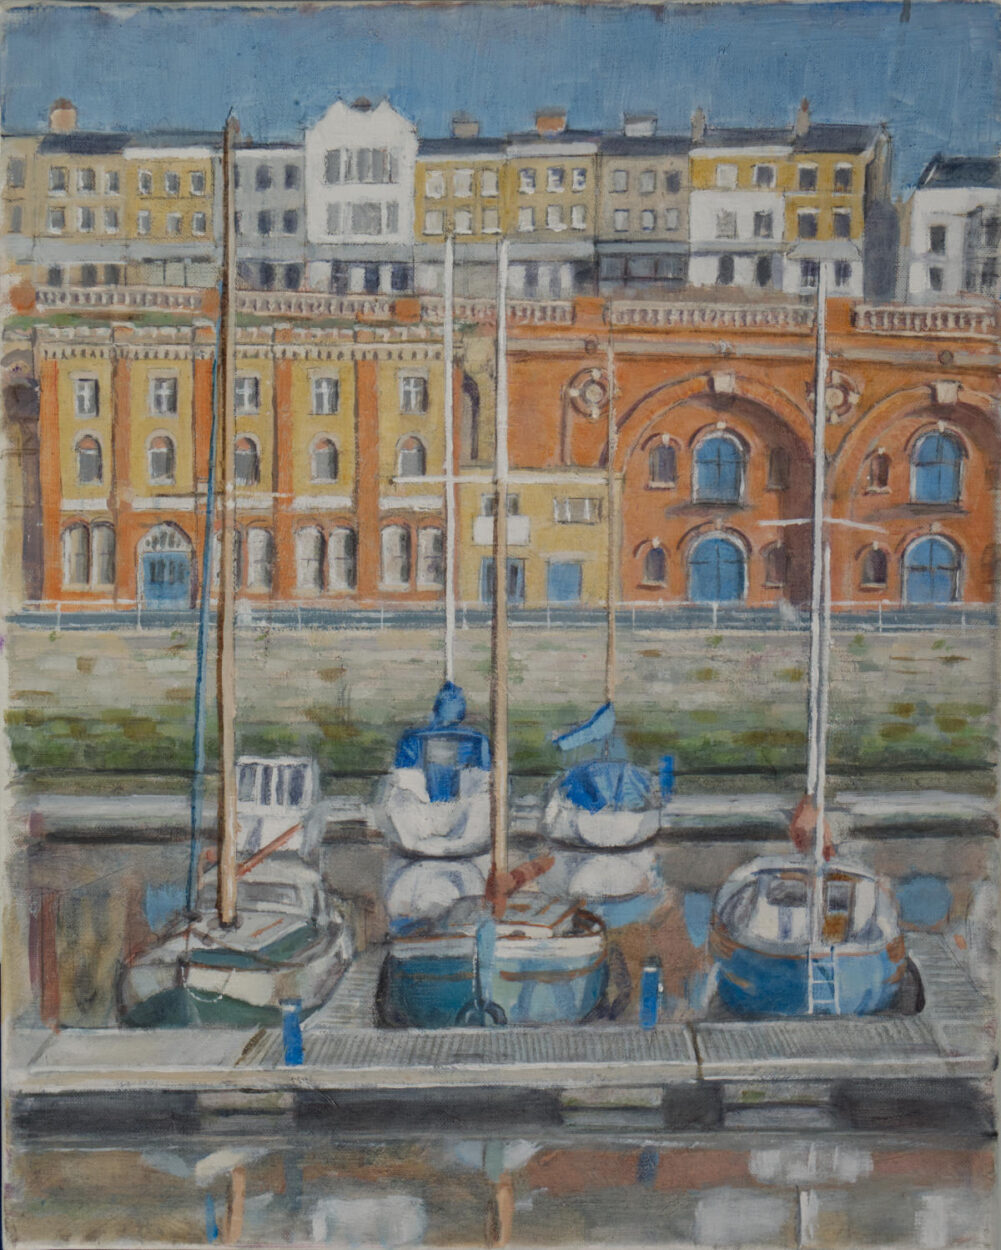 painting of ramsgate marina, with boats moored under historic buildings.